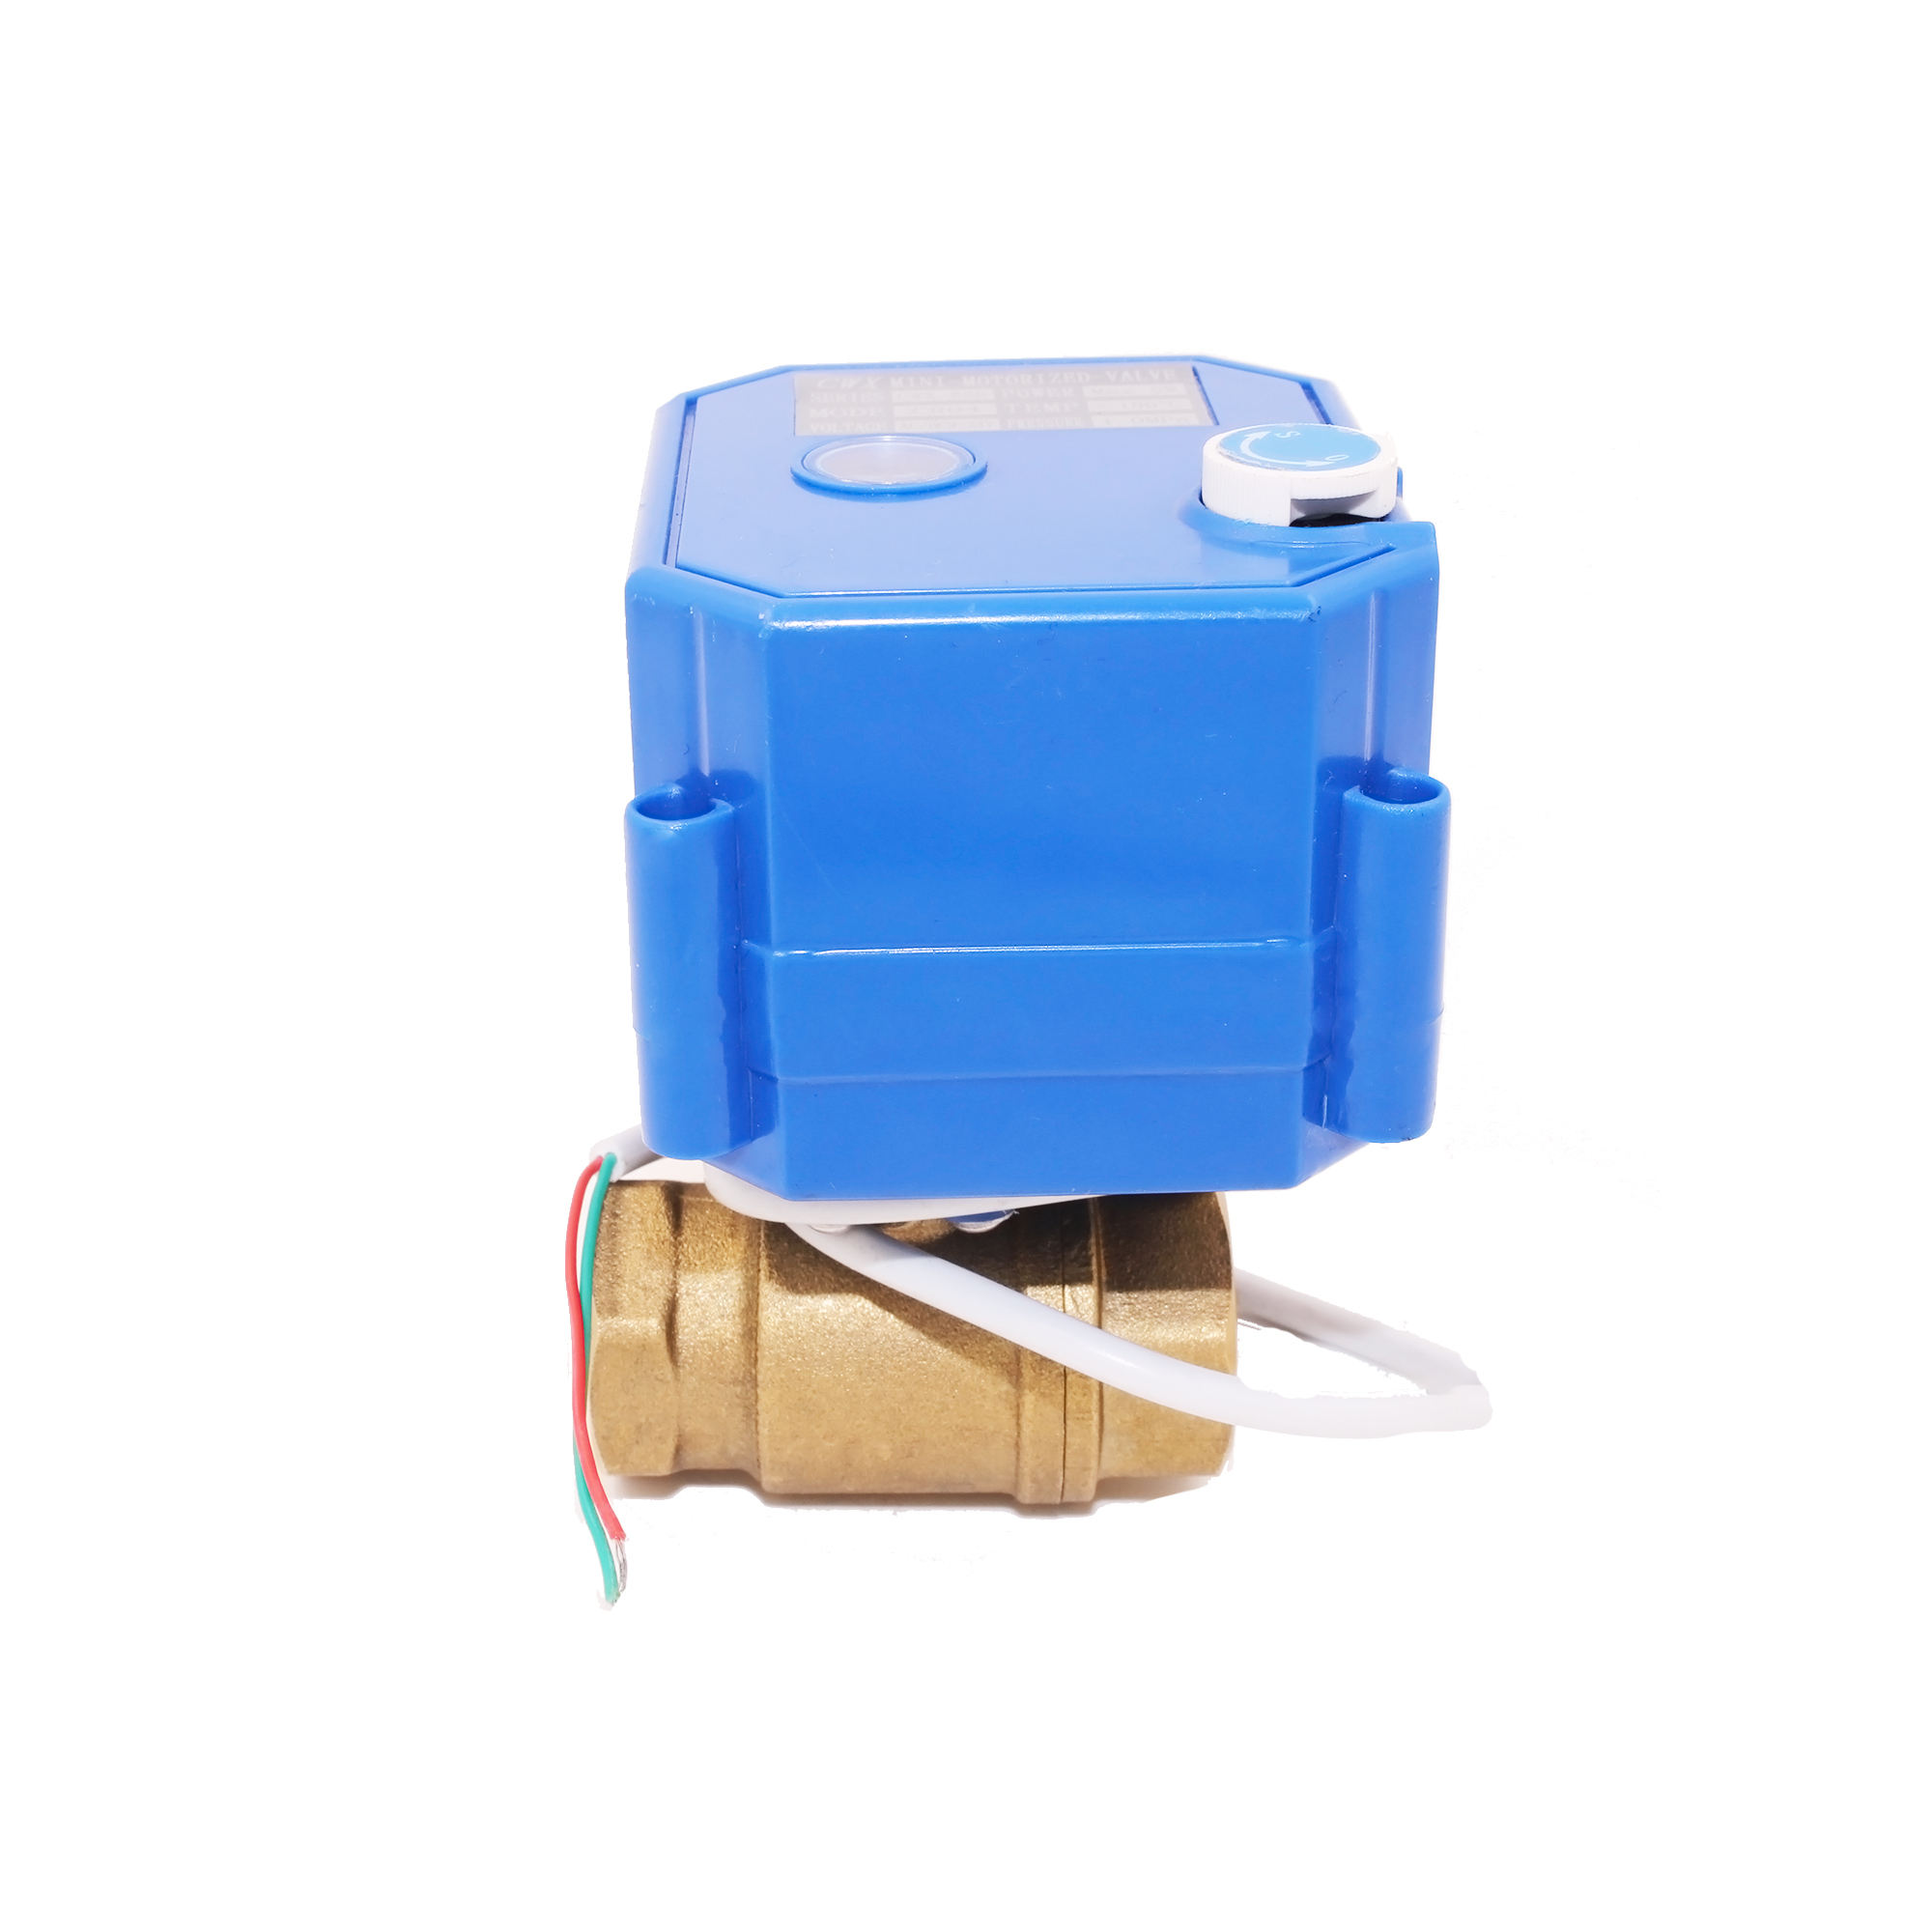 CWX-25S mini electric actuator control ball valve with manual override function DN15 DN20 DN25 brass for smart use